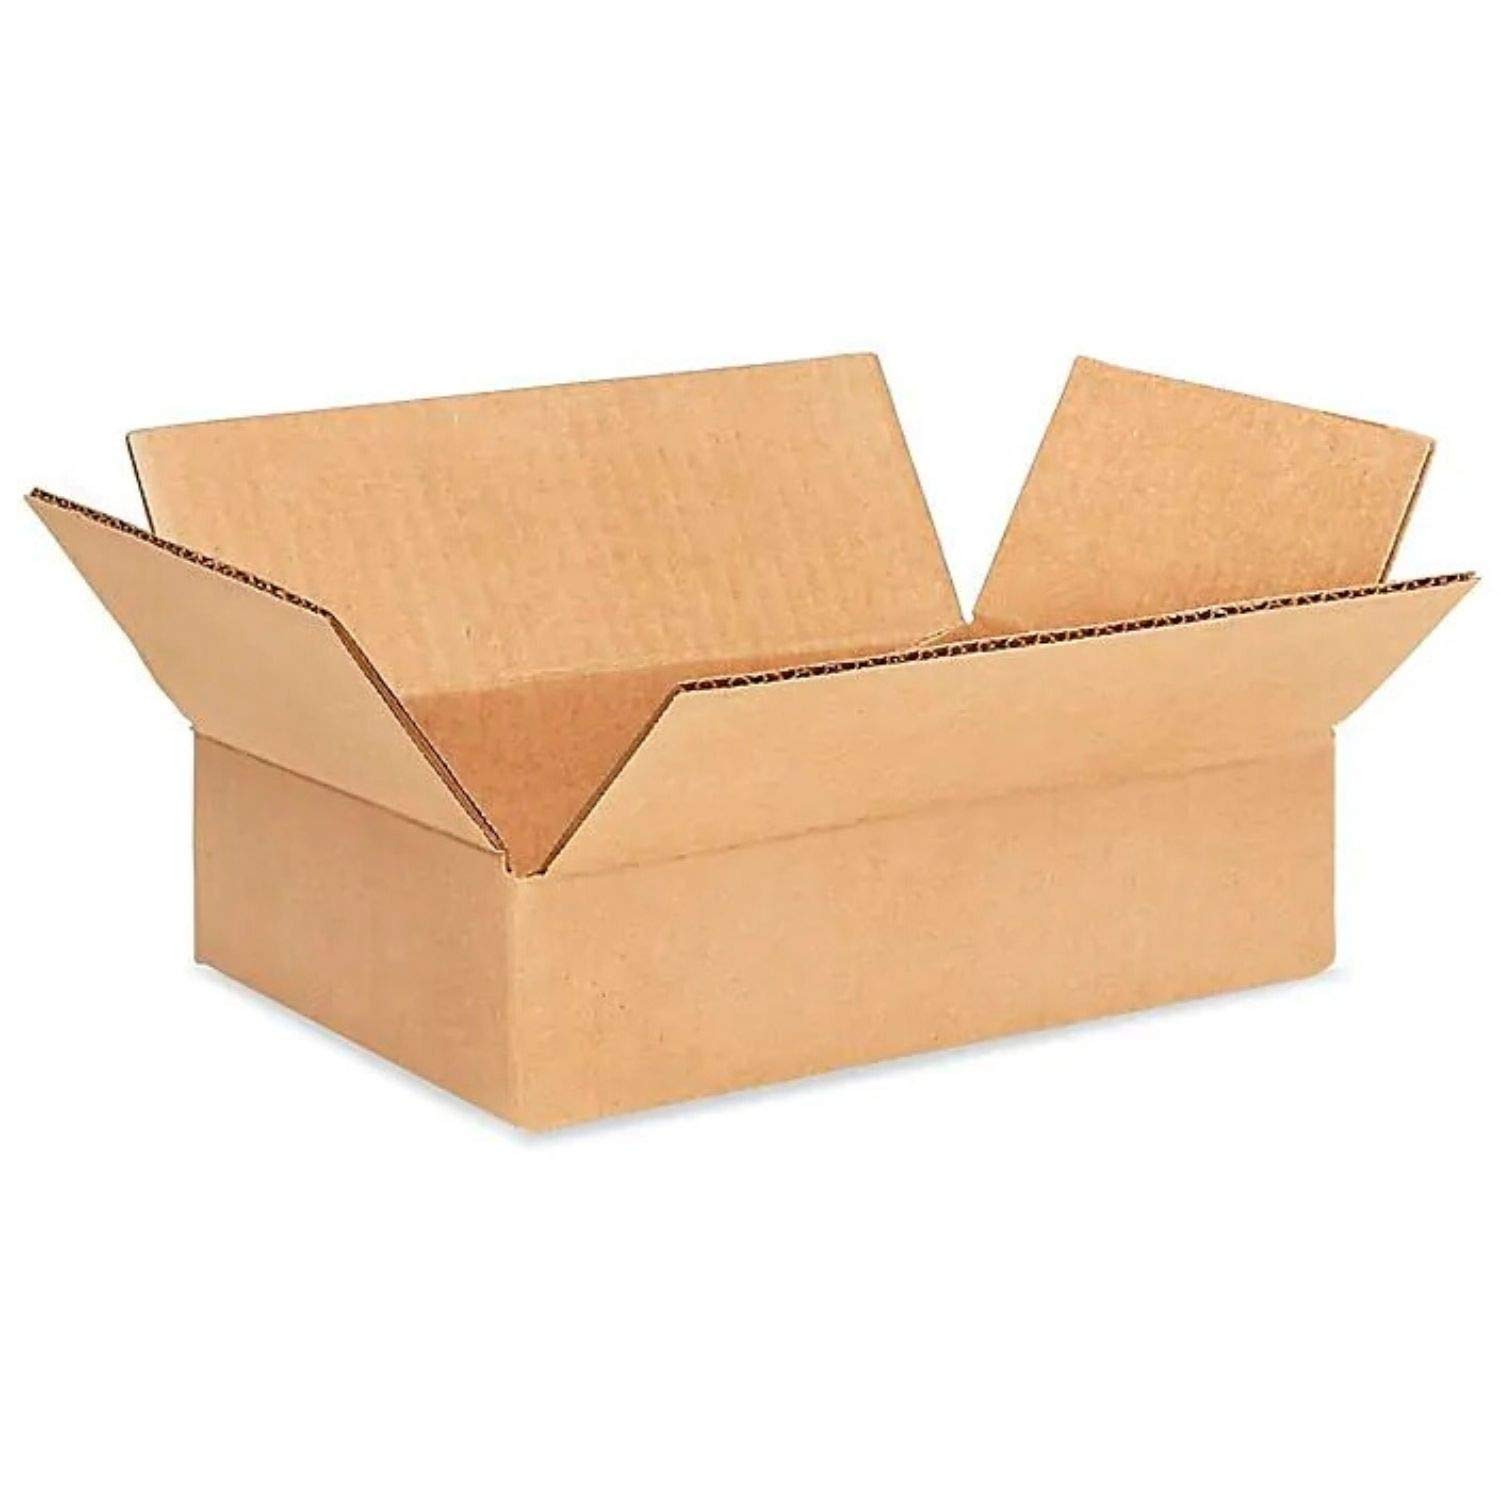 IDL Packaging Small Corrugated Shipping Boxes 9